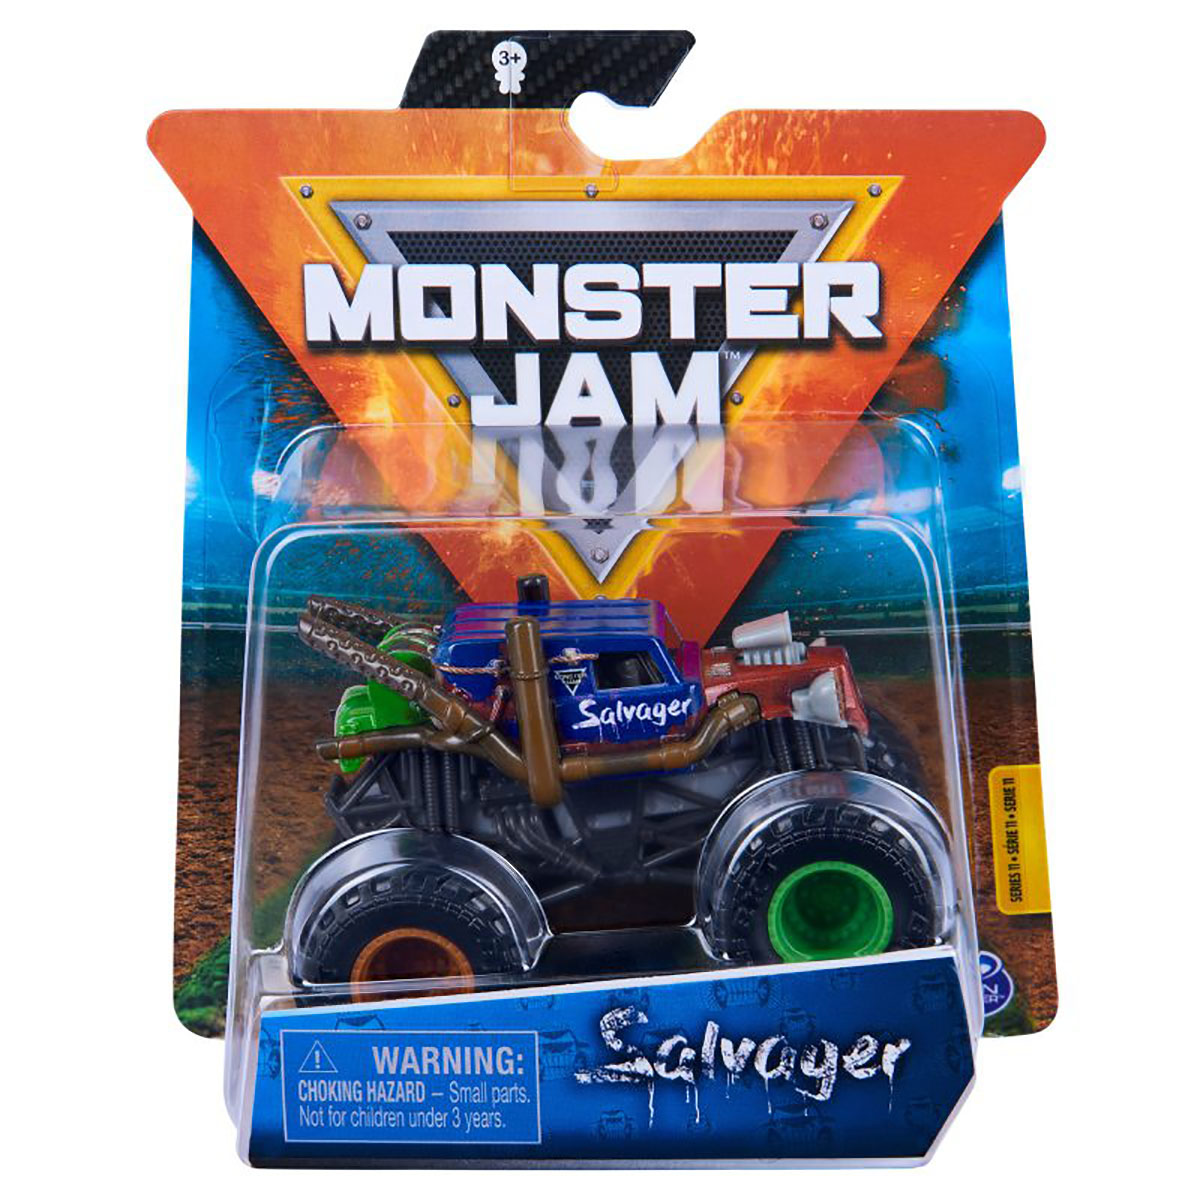 Masinuta Monster Jam, Scara 1:64, Salvager, Multicolor